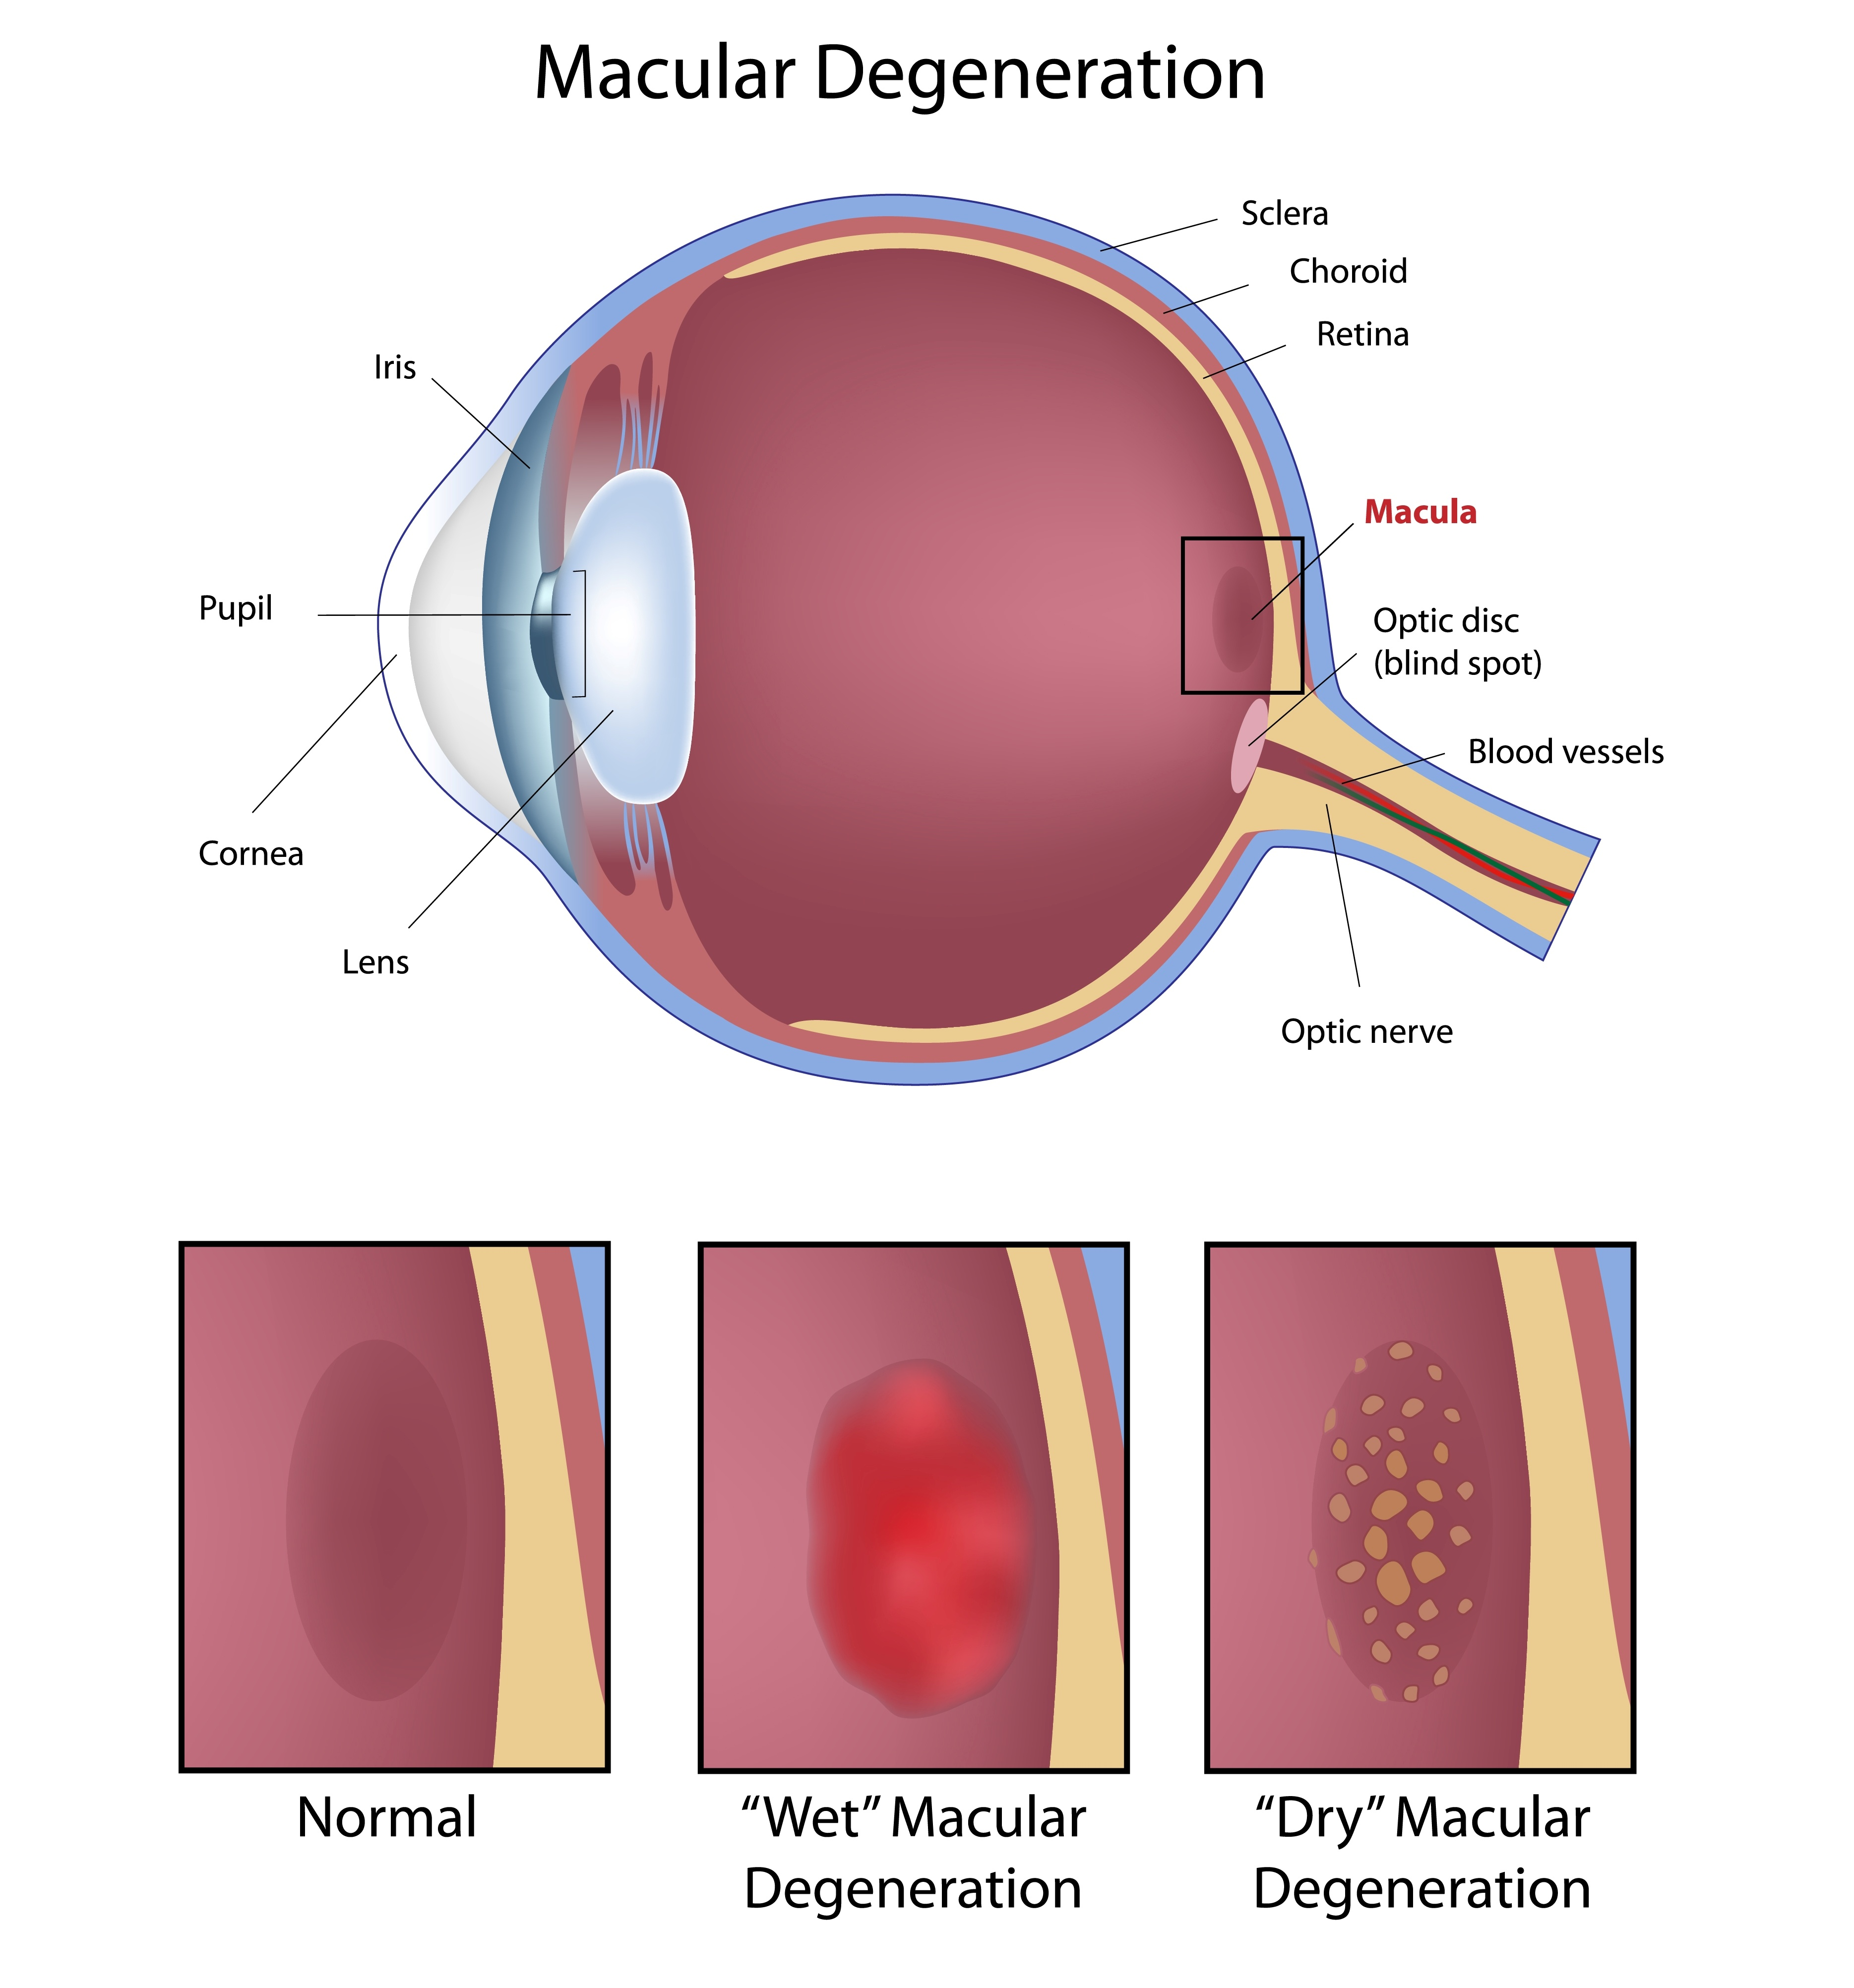 macular degeneration illustration